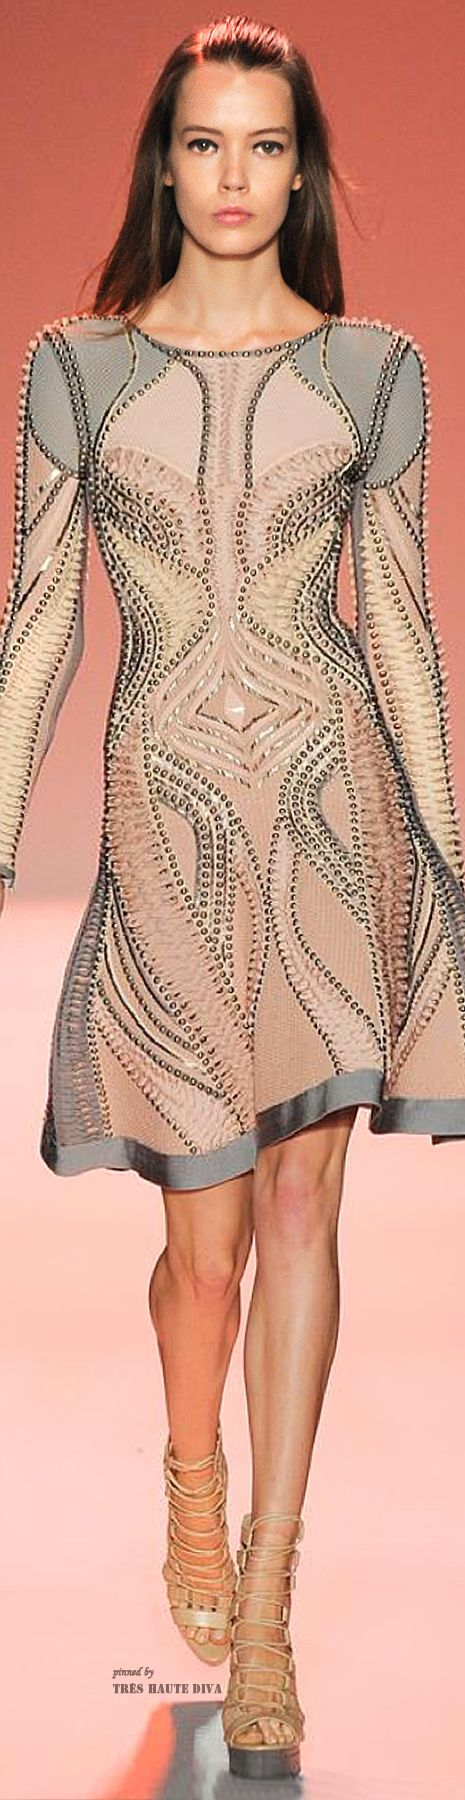 #NYFW Herve Leger Spring/Summer 2015 RTW - pin courtesy of Tres Haute Diva